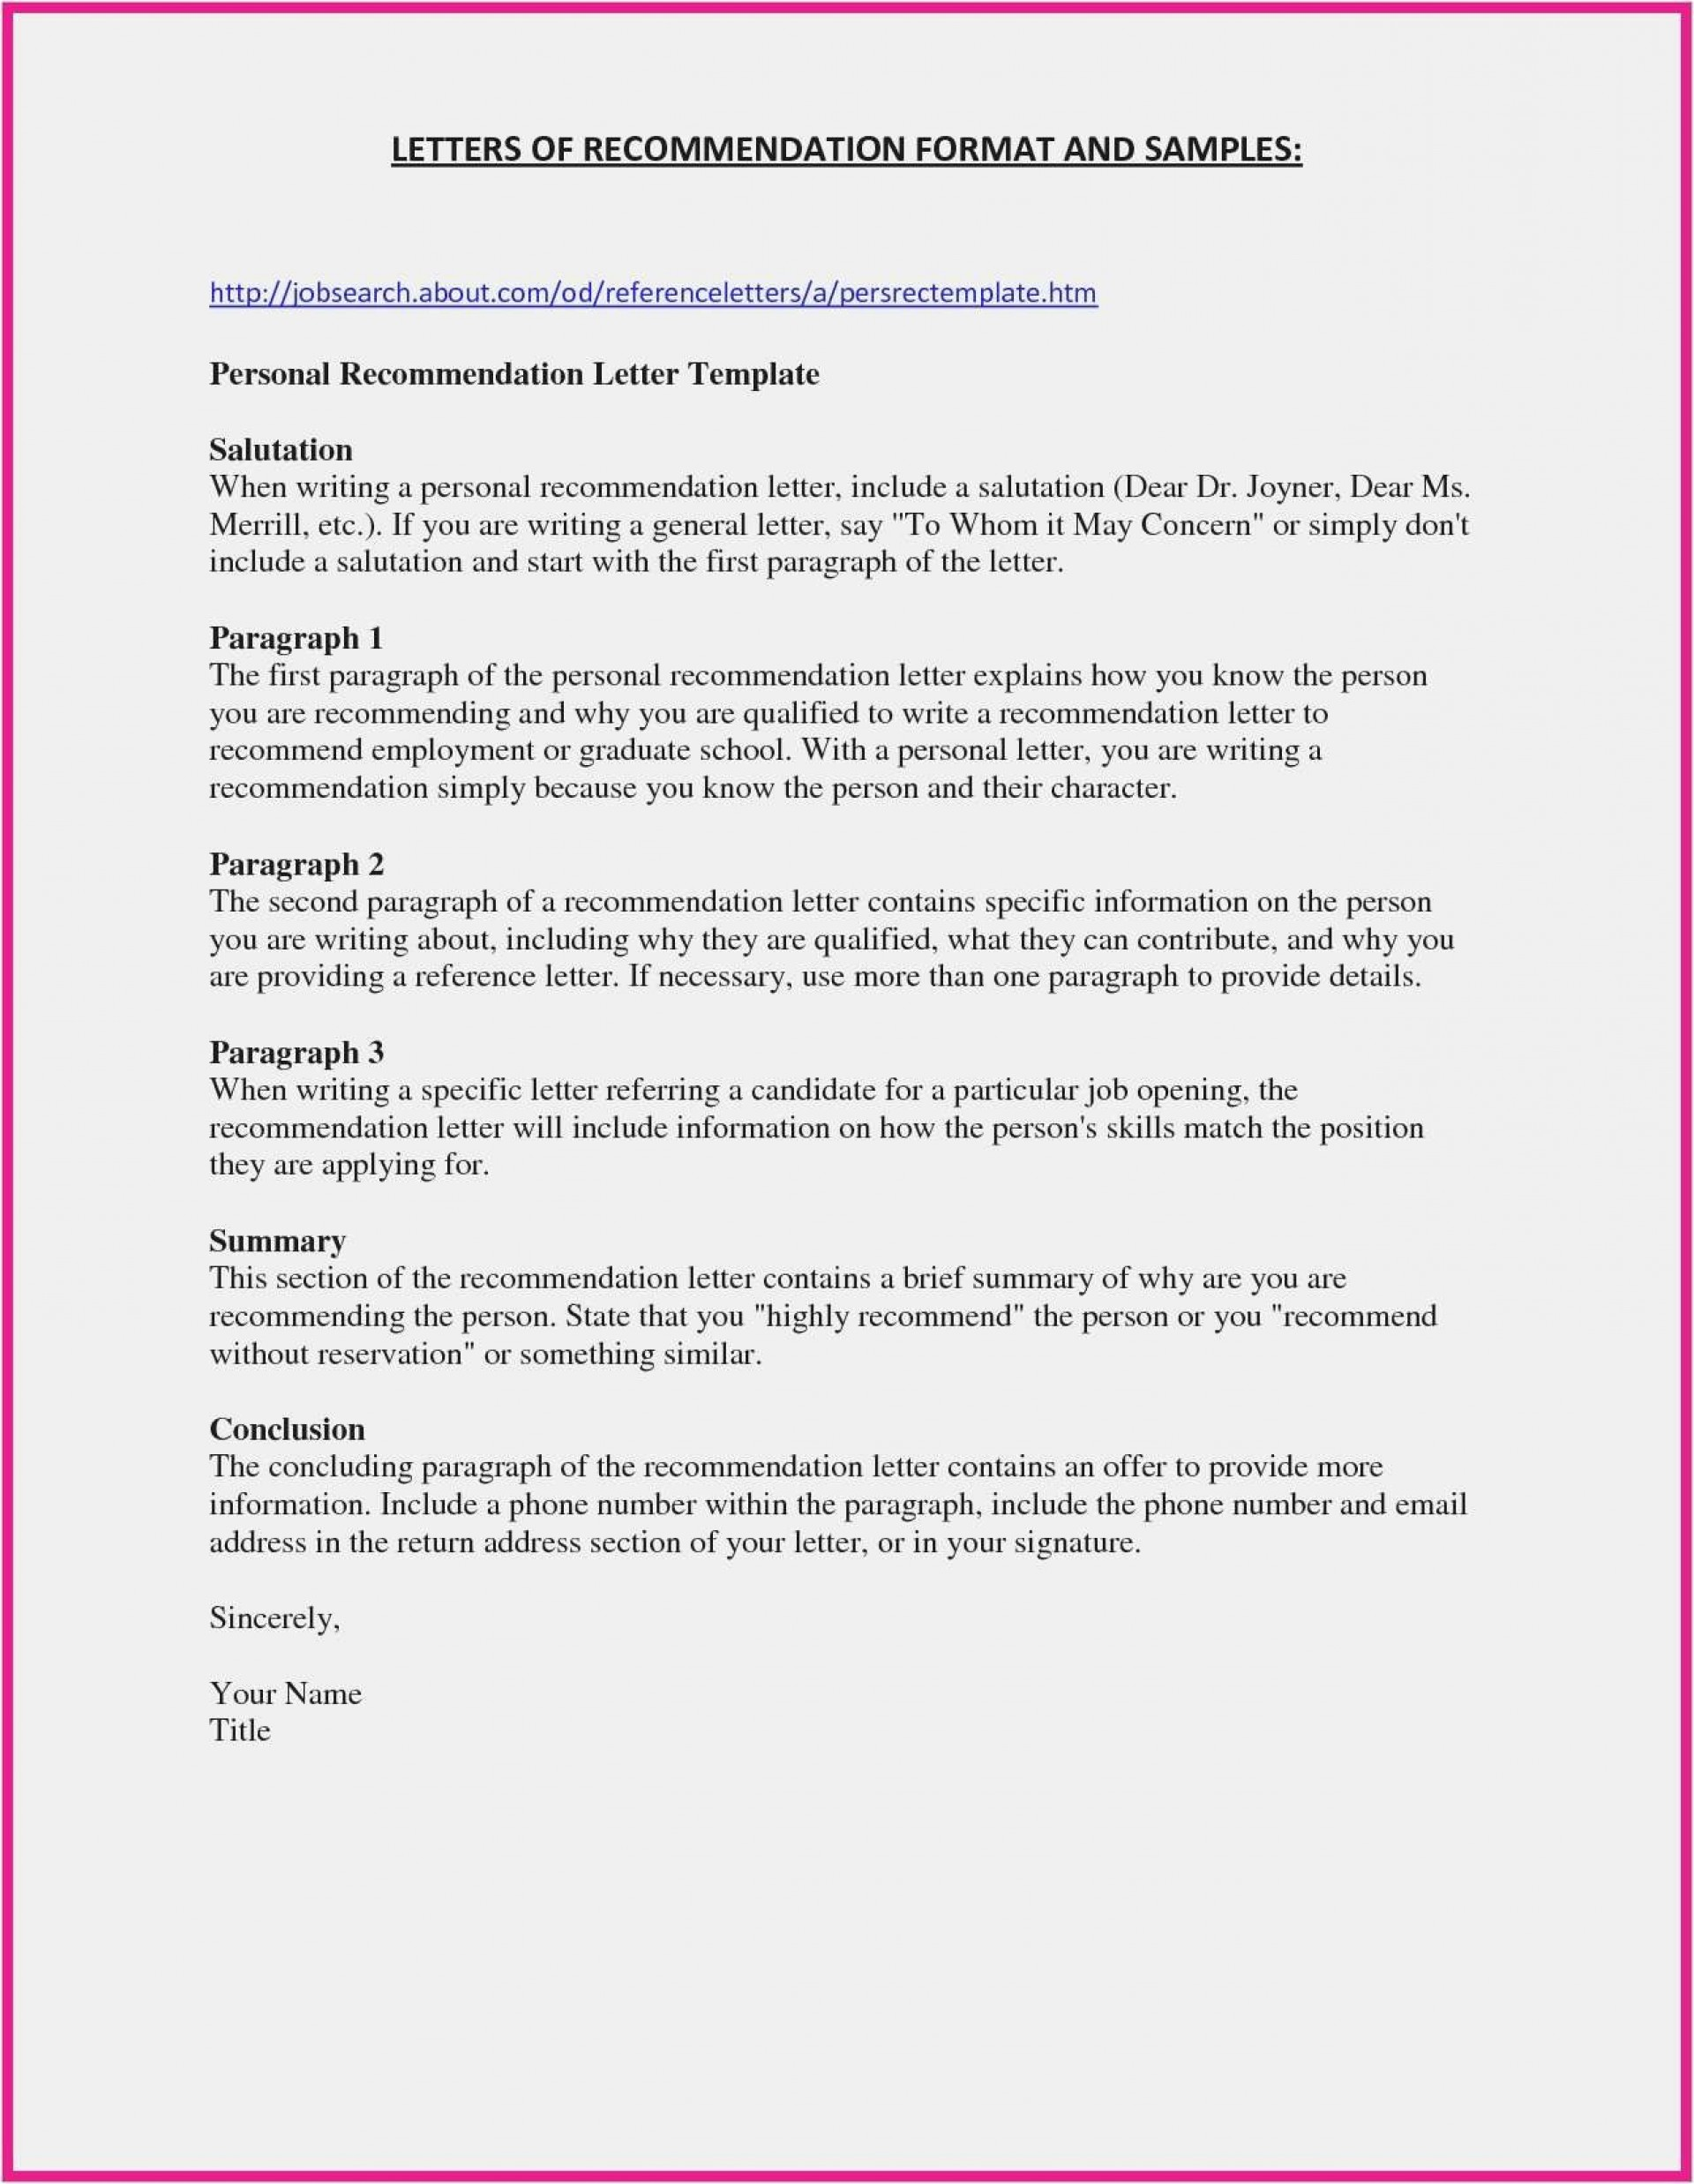 Professional Letter Of Recommendation Template from www.addictionary.org